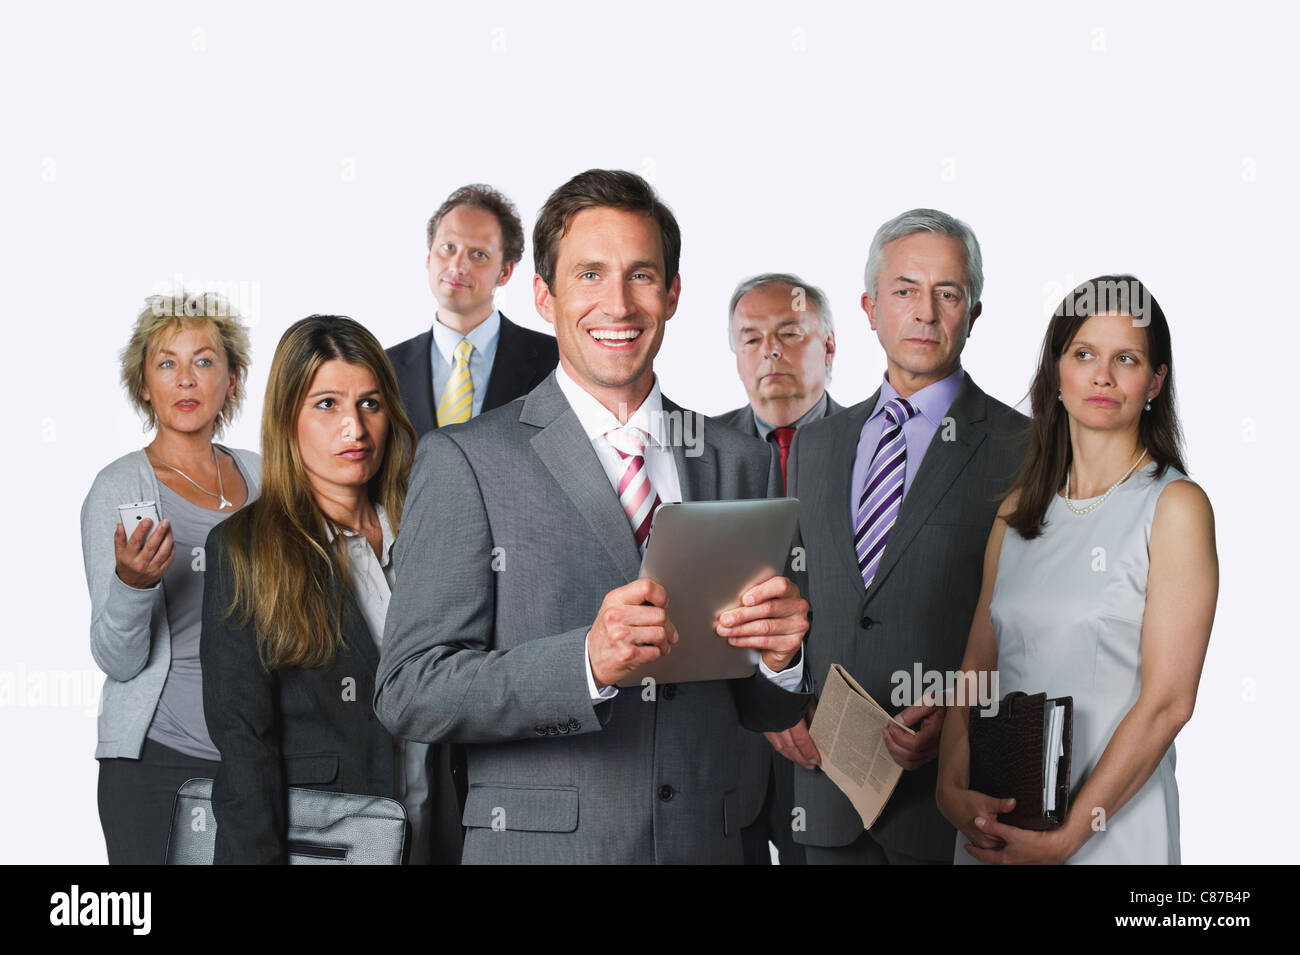 Business people with digital tablet, file, diary, mobile phone and newspaper against white background Stock Photo